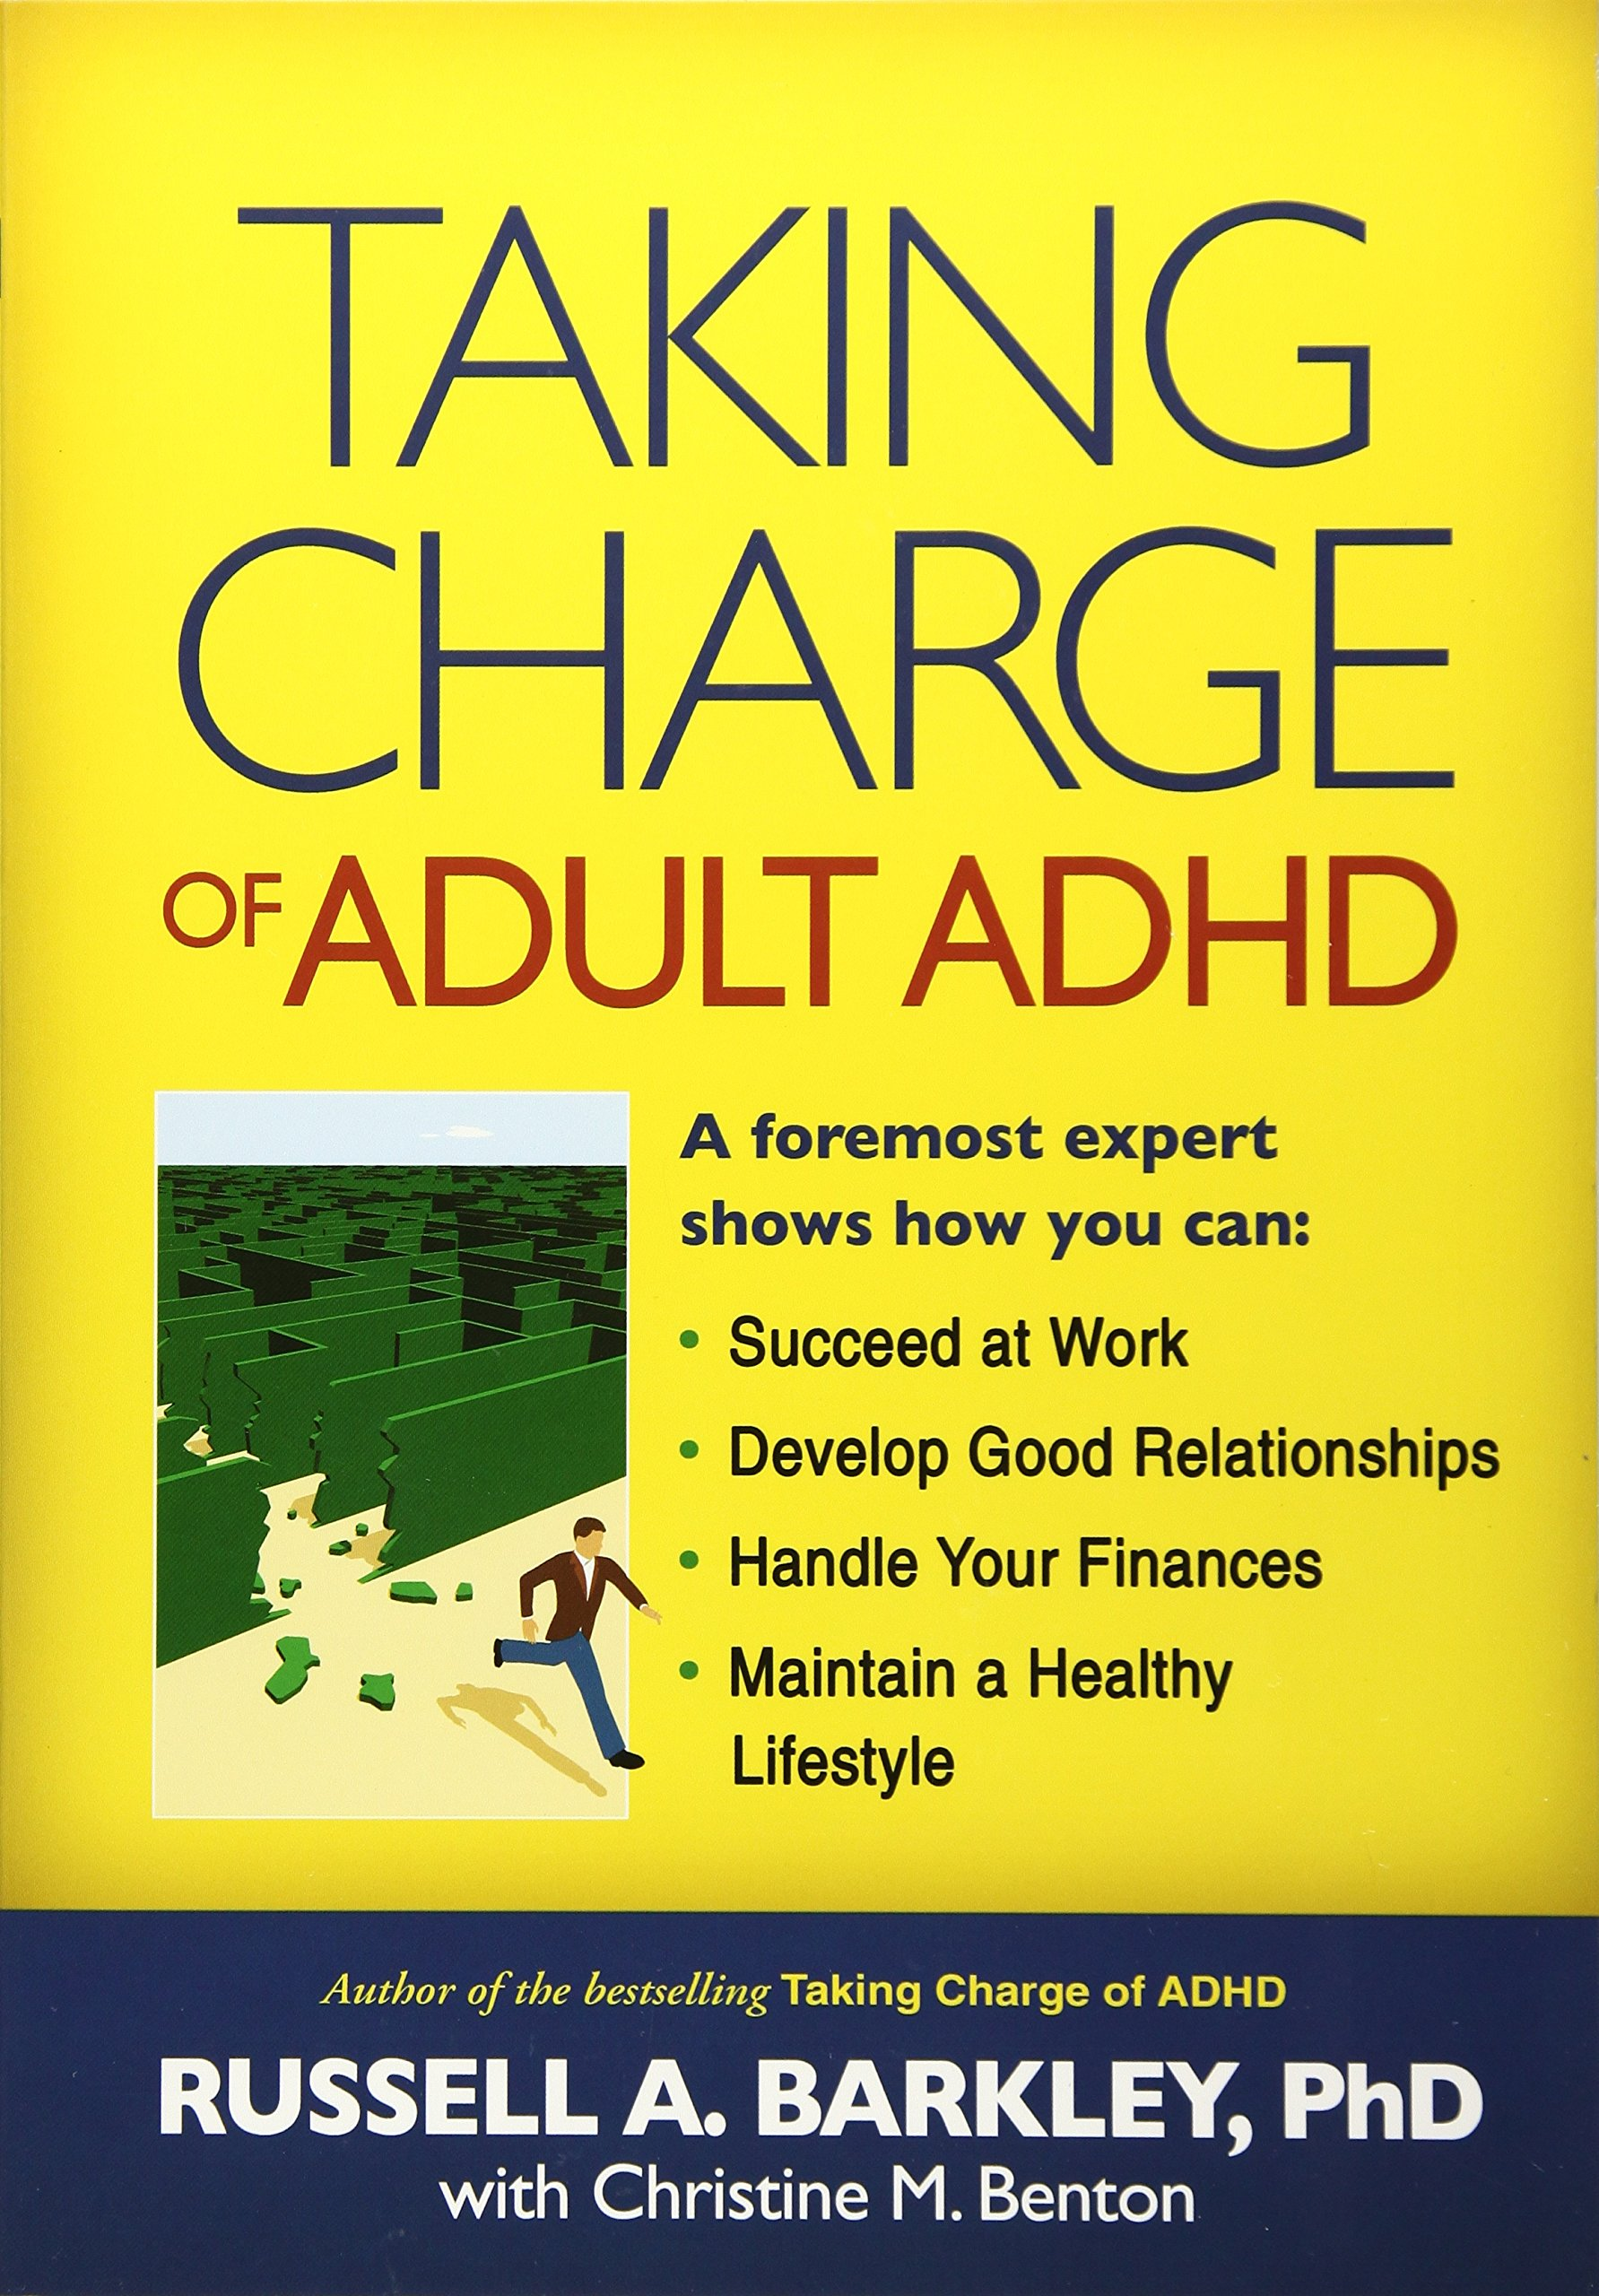 Taking charge of adult adhd amazon russell a barkley taking charge of adult adhd amazon russell a barkley 9781606233382 books fandeluxe Image collections